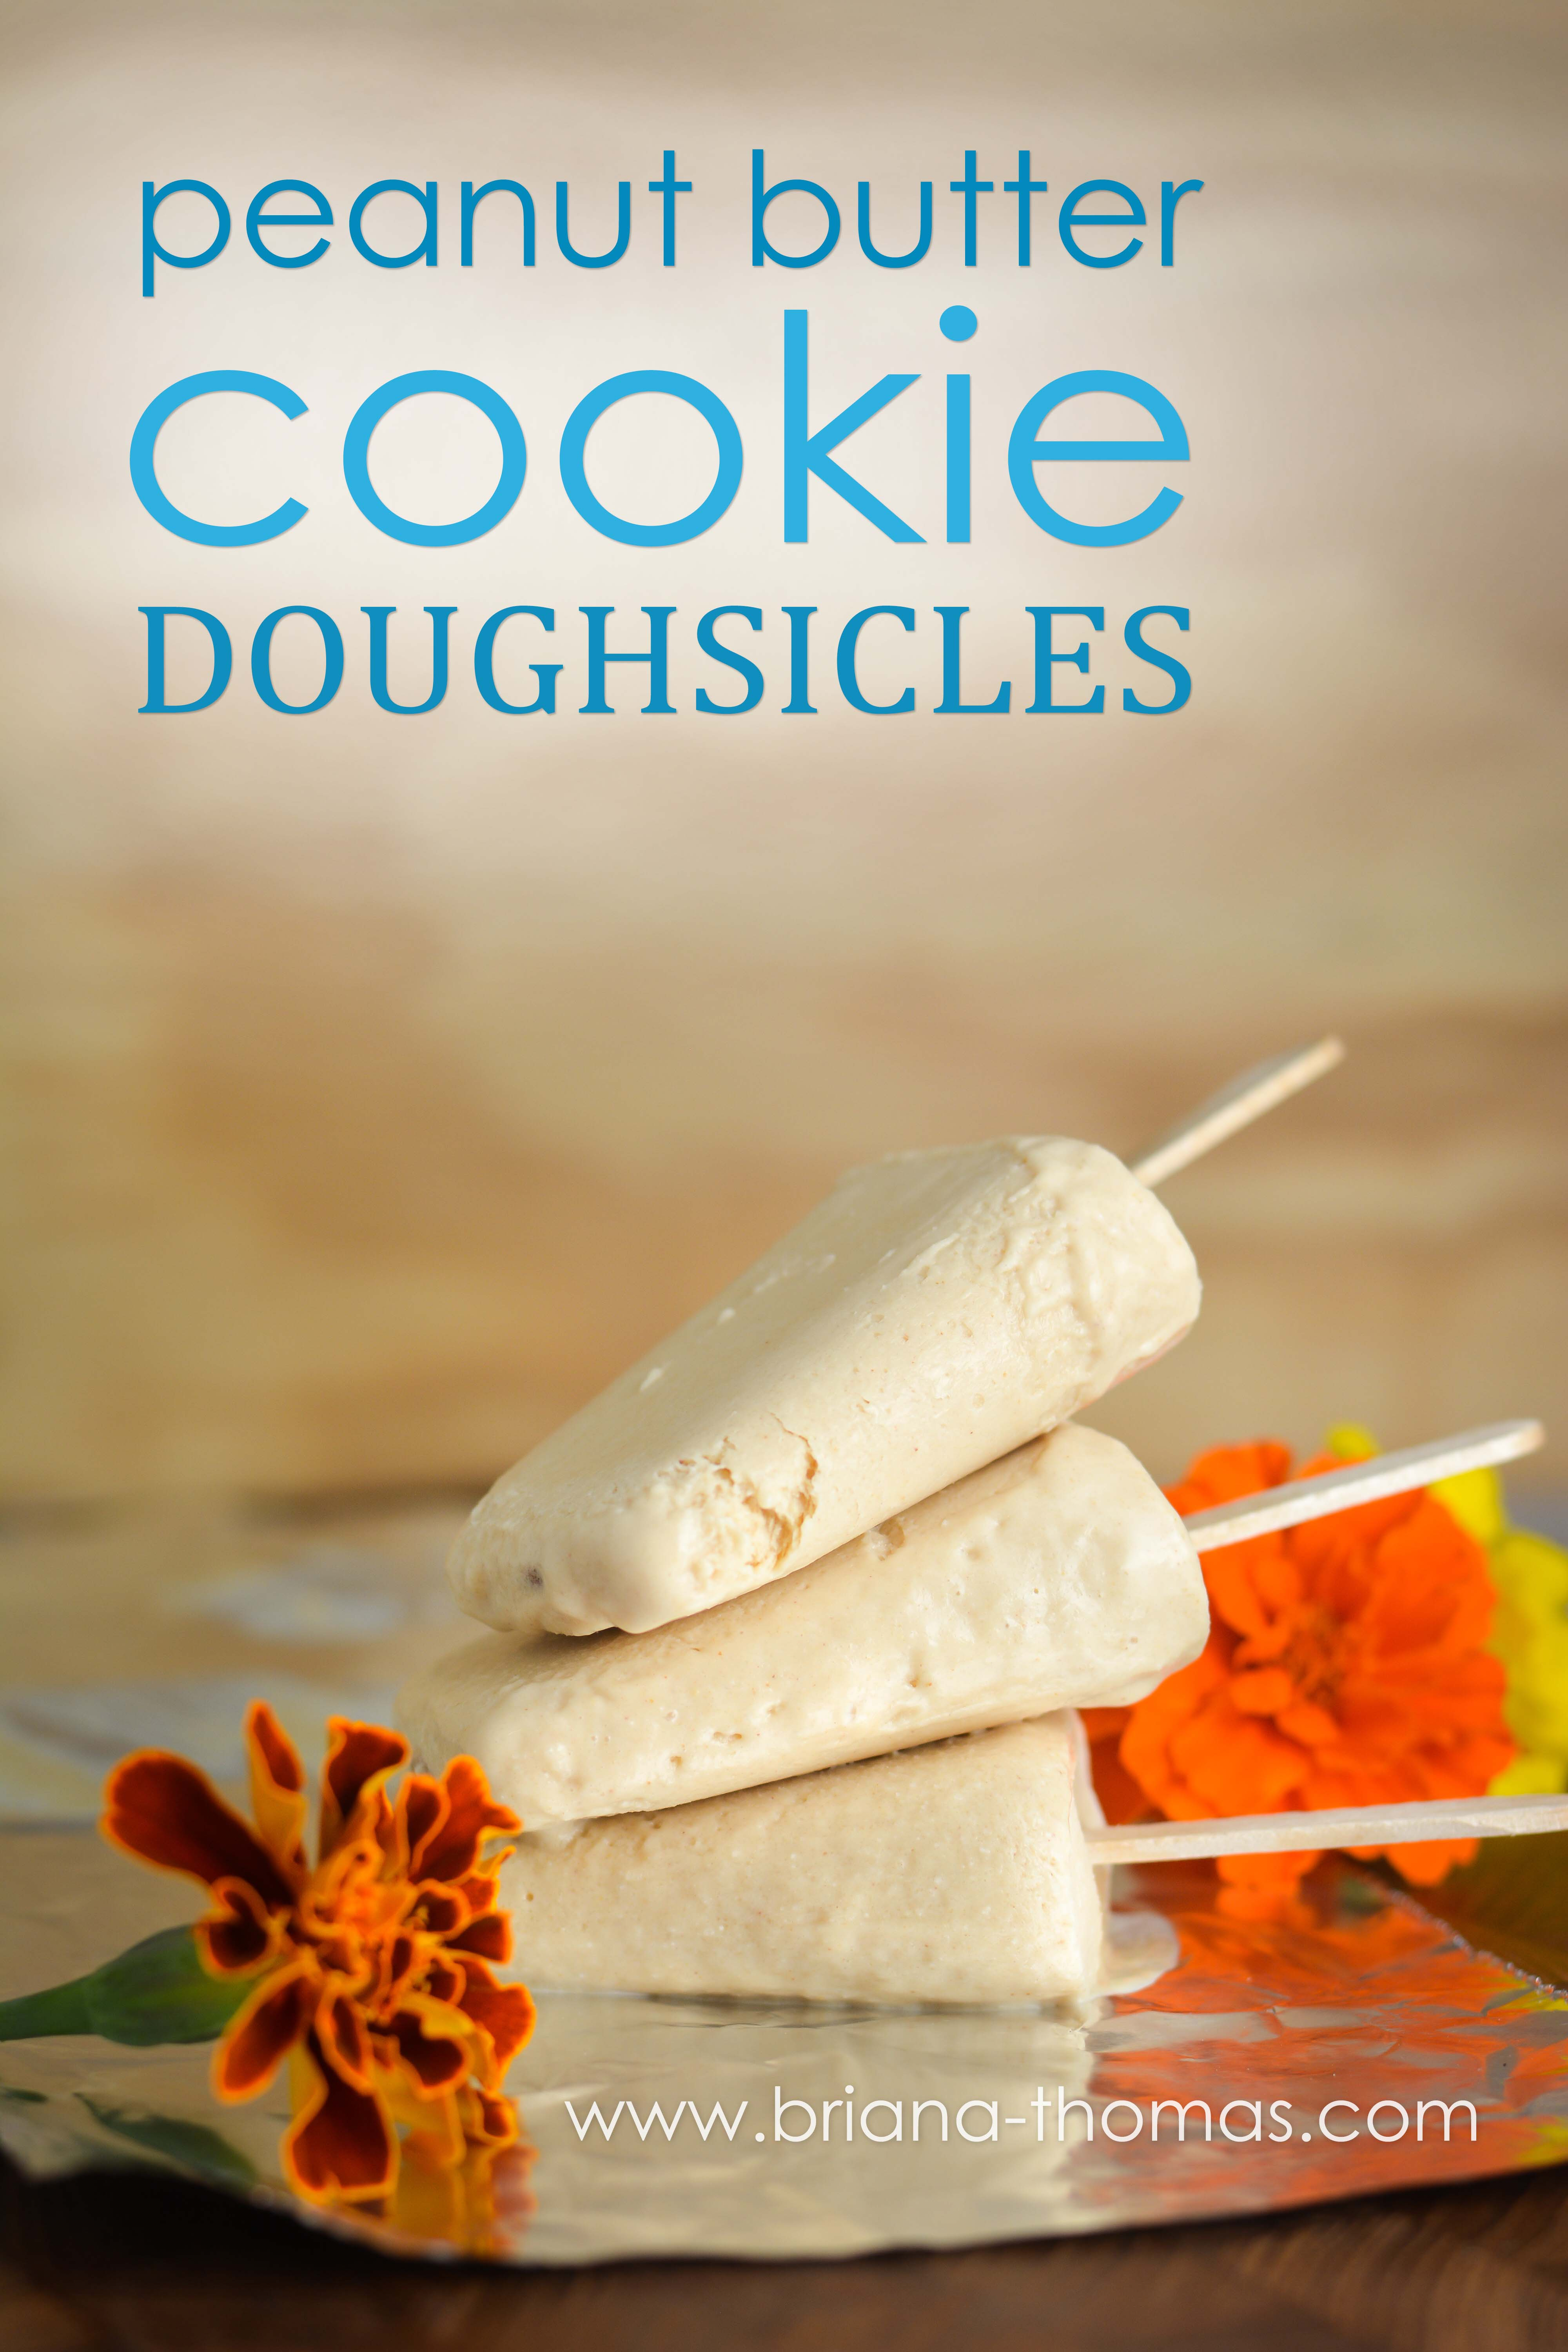 These low-carb Peanut Butter Cookie Doughsicles have a great creamy texture but are actually a light snack/dessert! THM:S, sugar free, gluten/egg free